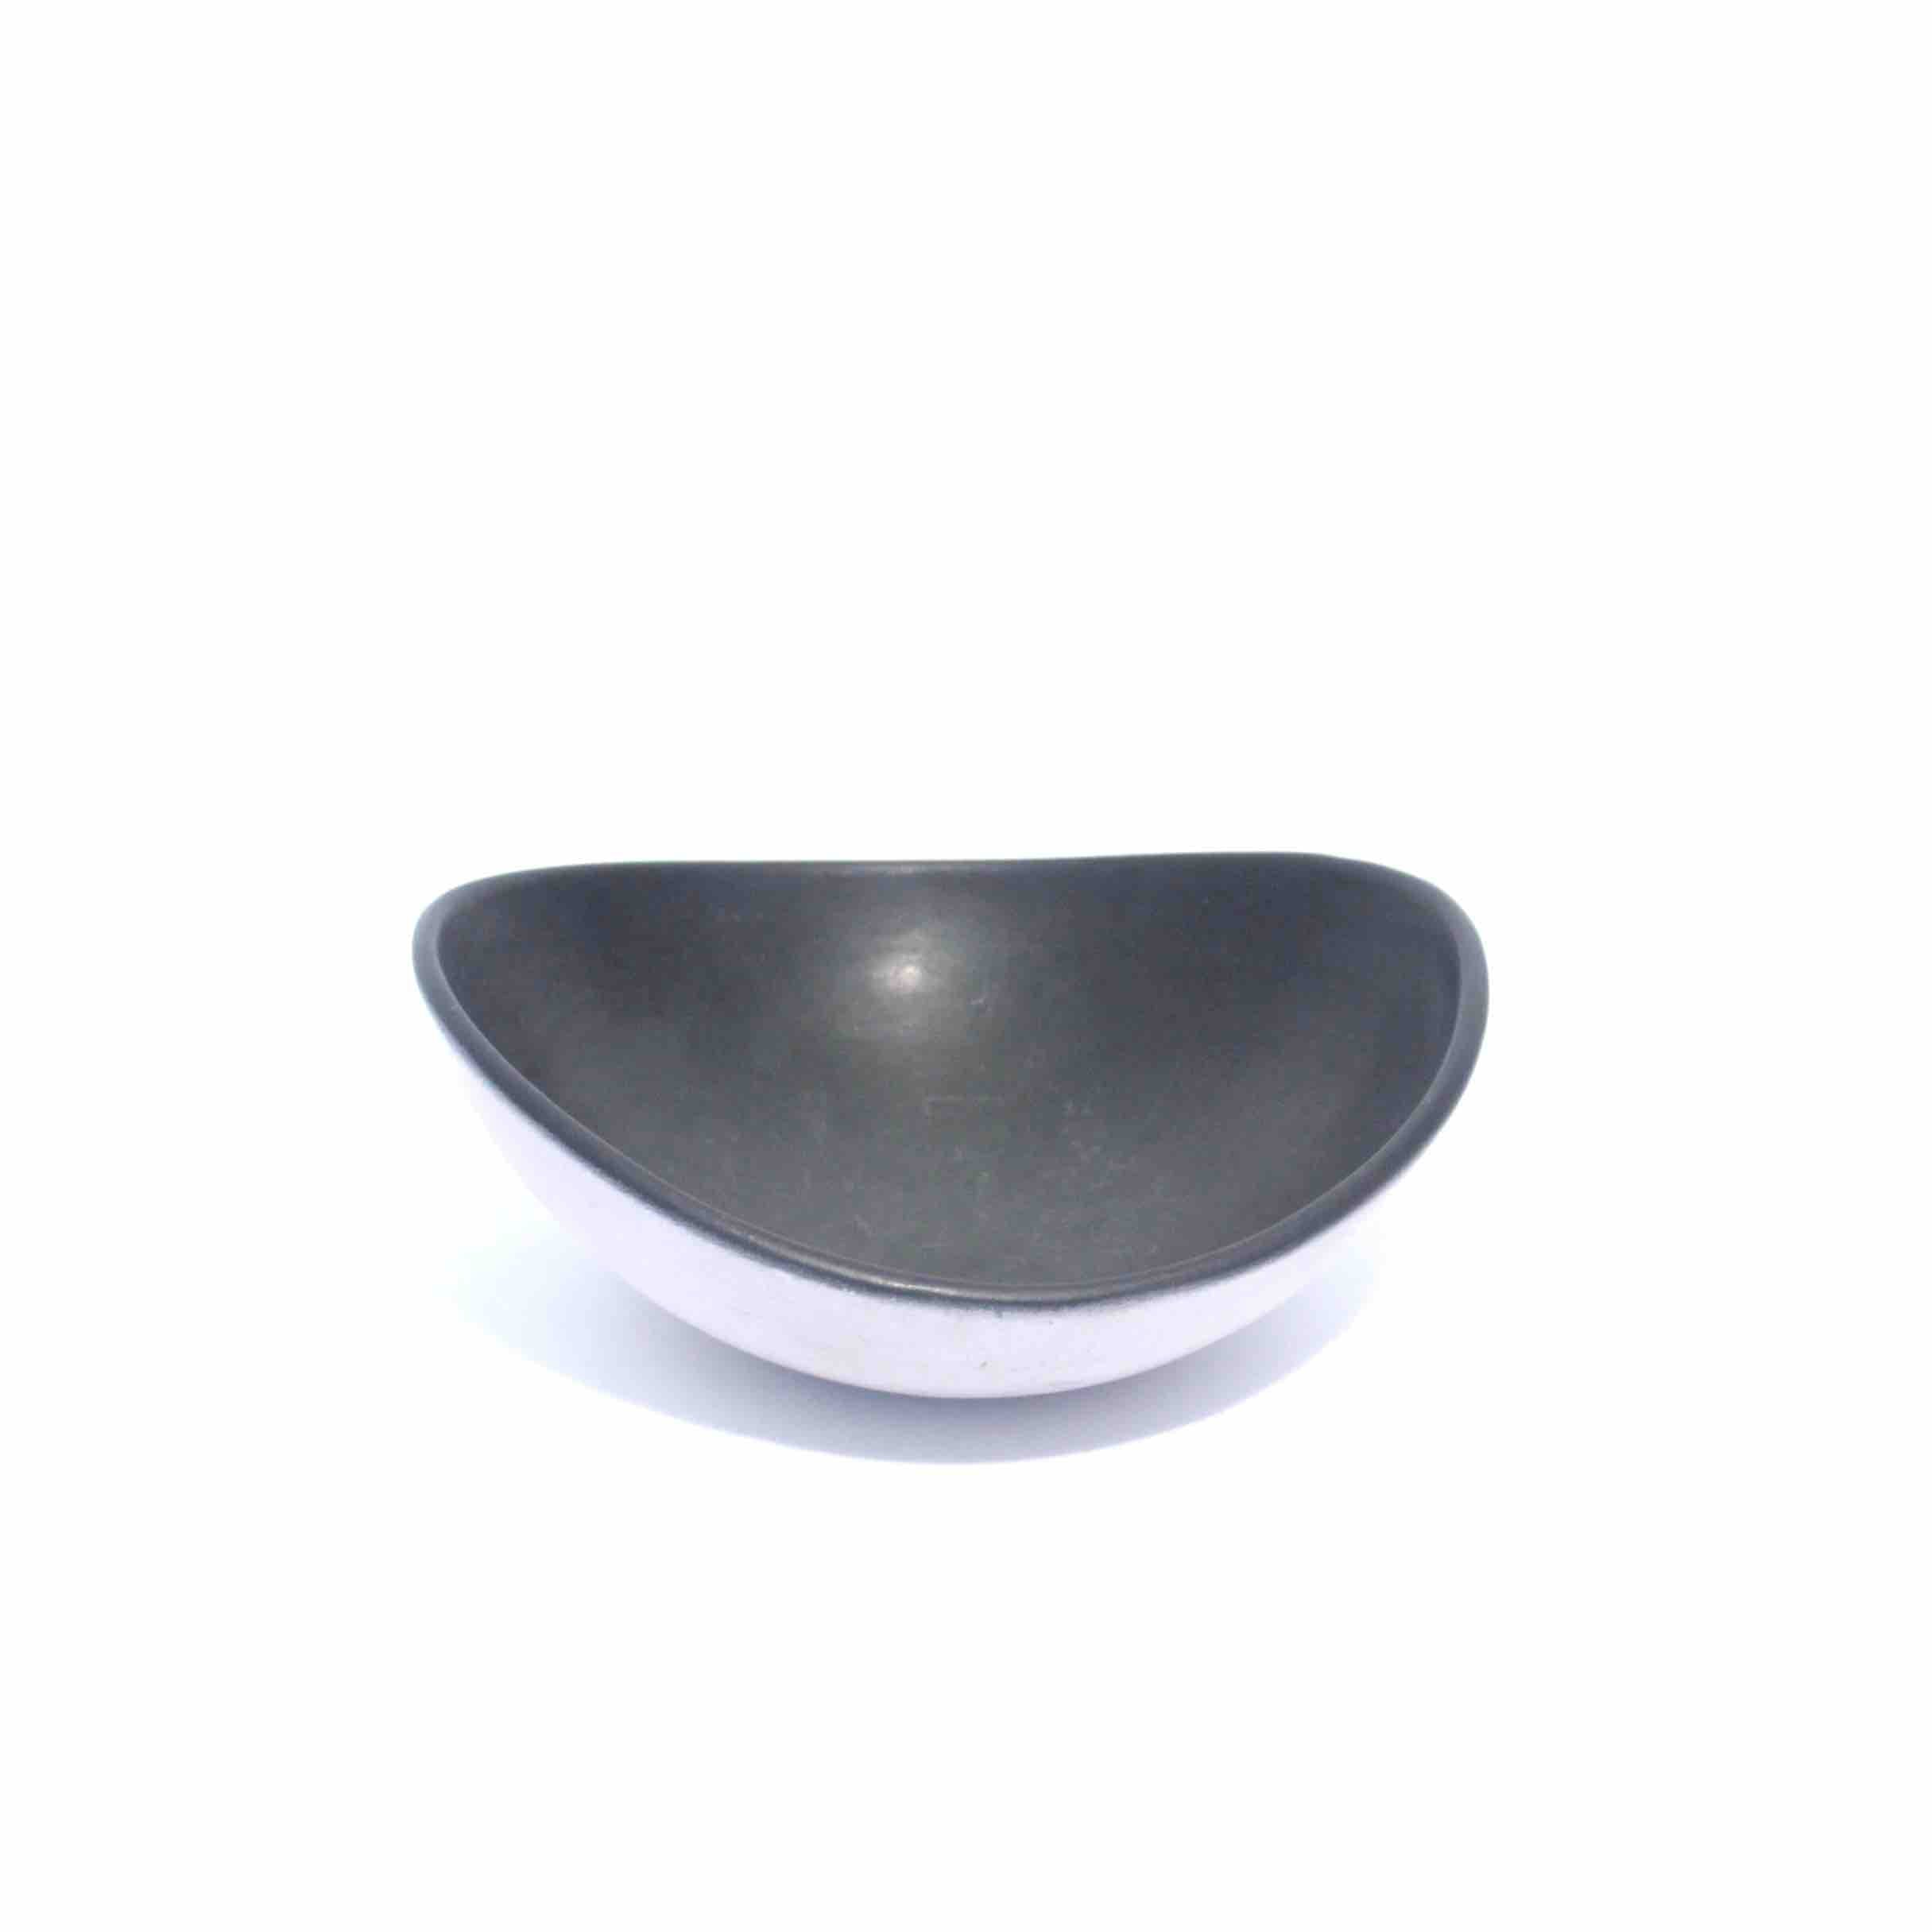 Ceramic White and Black Bowl